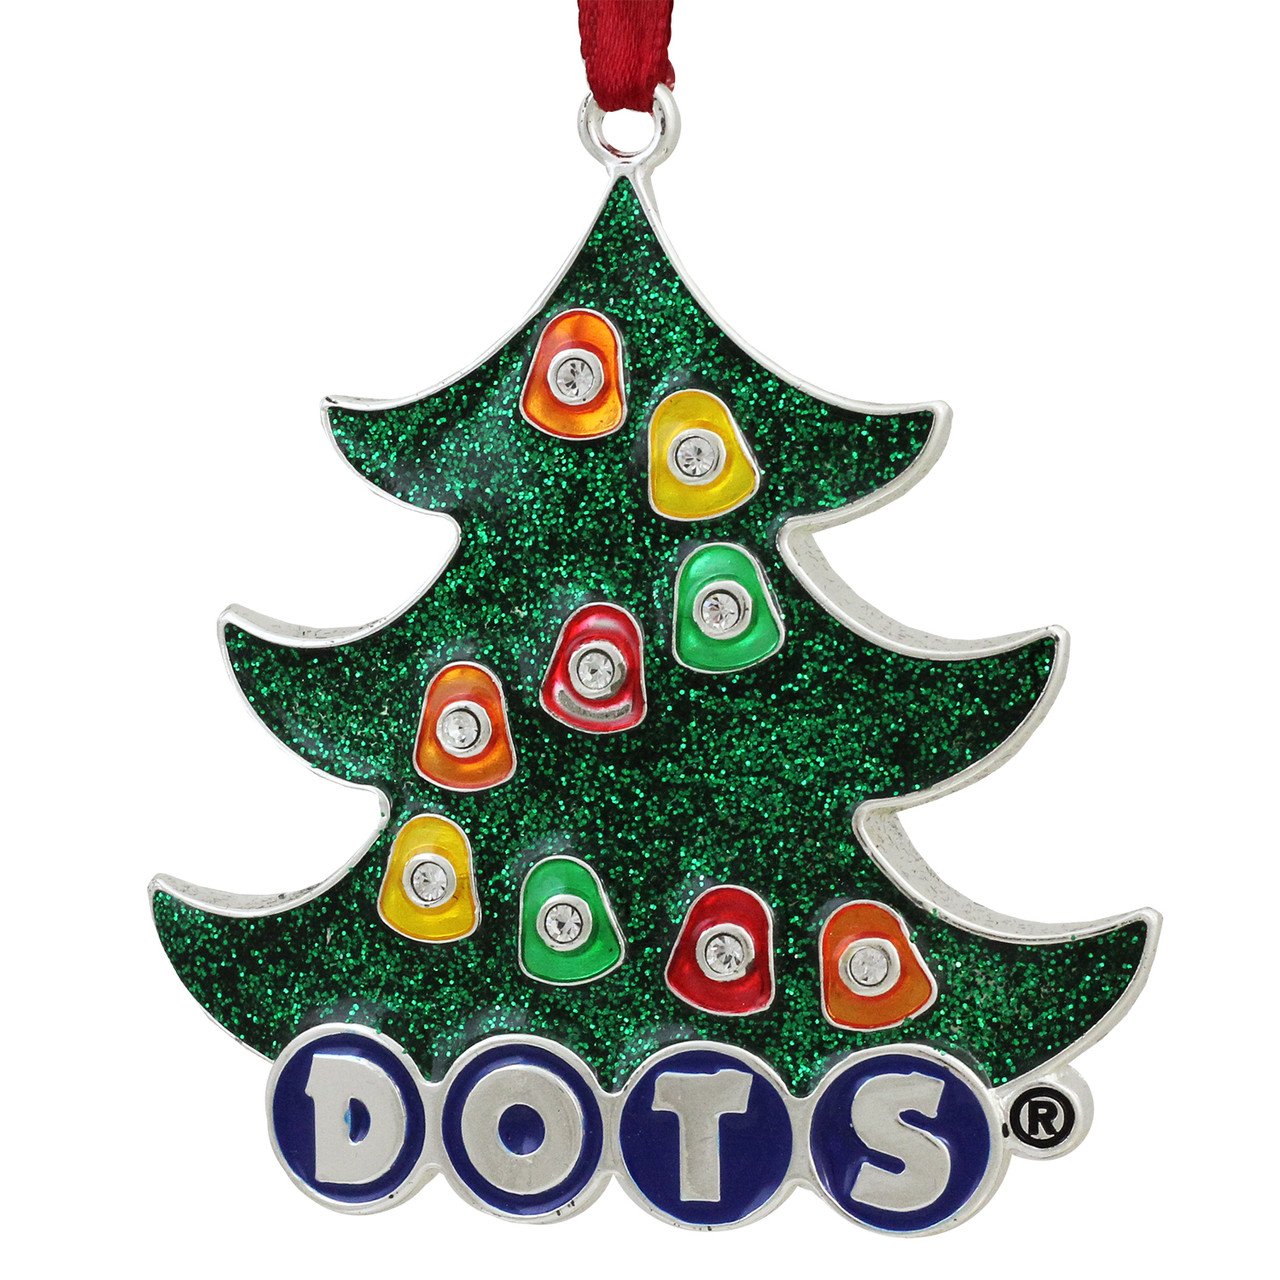 3 silver plated dots candy logo christmas tree ornament with european crystals 31740018 - Silver Plated Christmas Tree Decorations